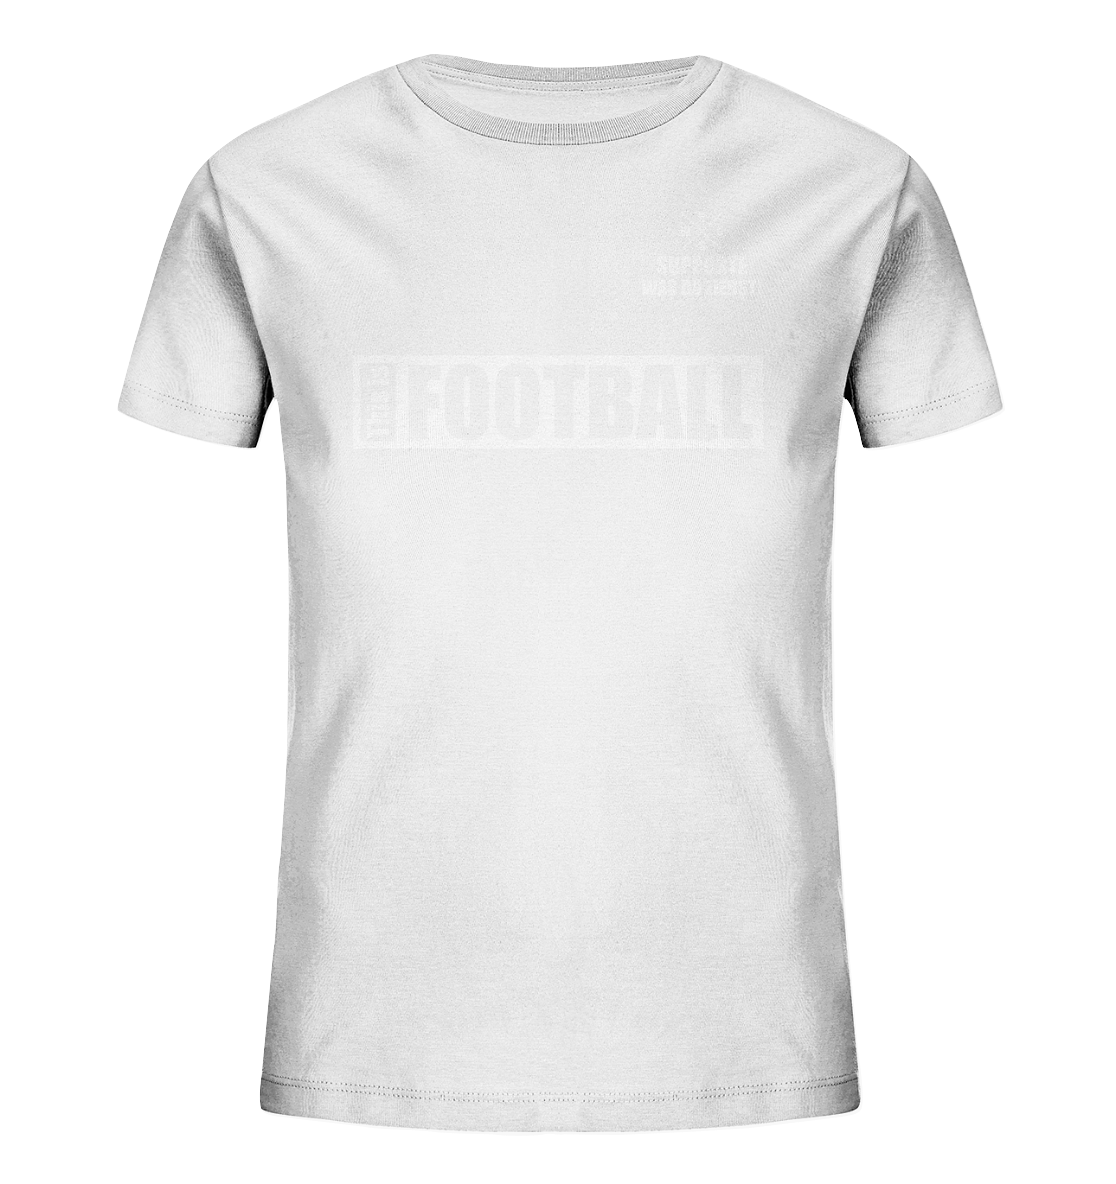 "Teamsport Shirt ""THIS IS FOOTBALL"" Kids UNISEX Organic T-Shirt weiss"